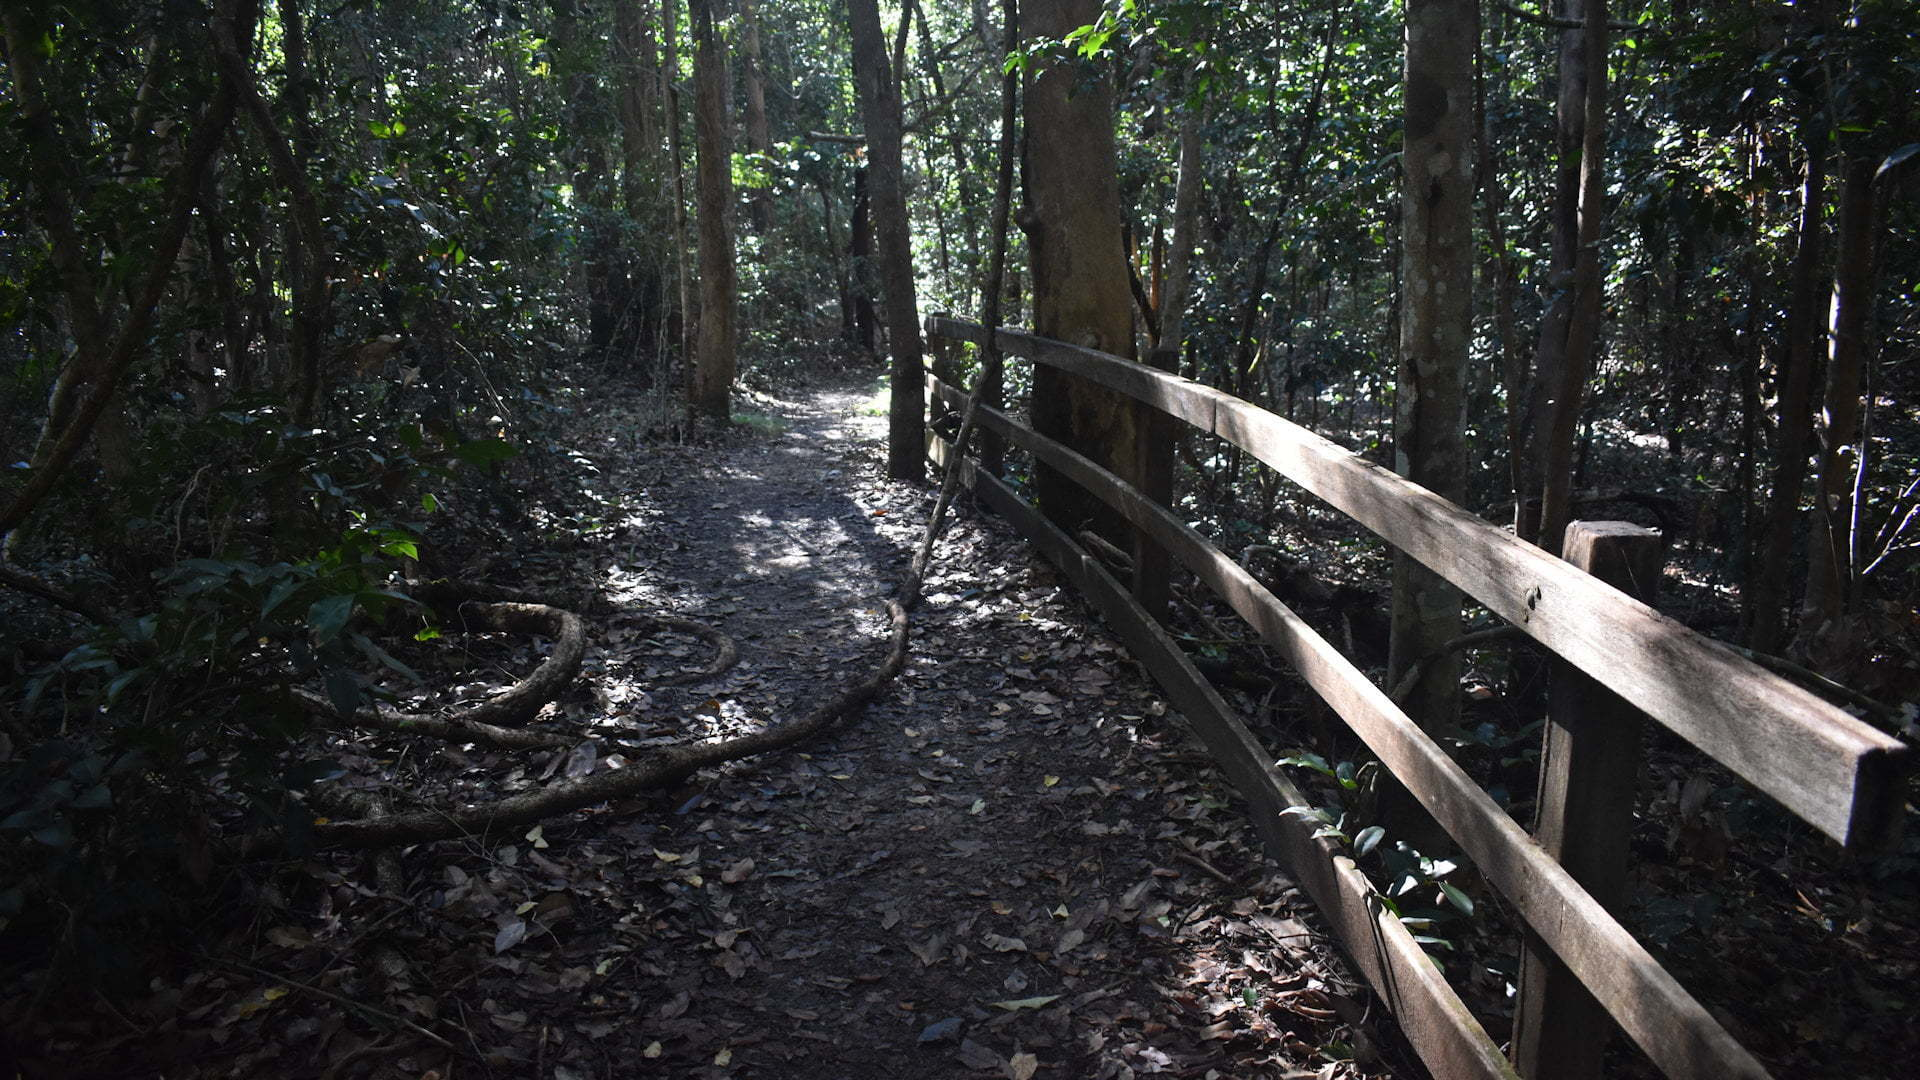 Walking path in a rainforest, with a thick vine laying across the ground and wooden handrail on the side, taken along the walk at Iluka World Heritage Rainforest